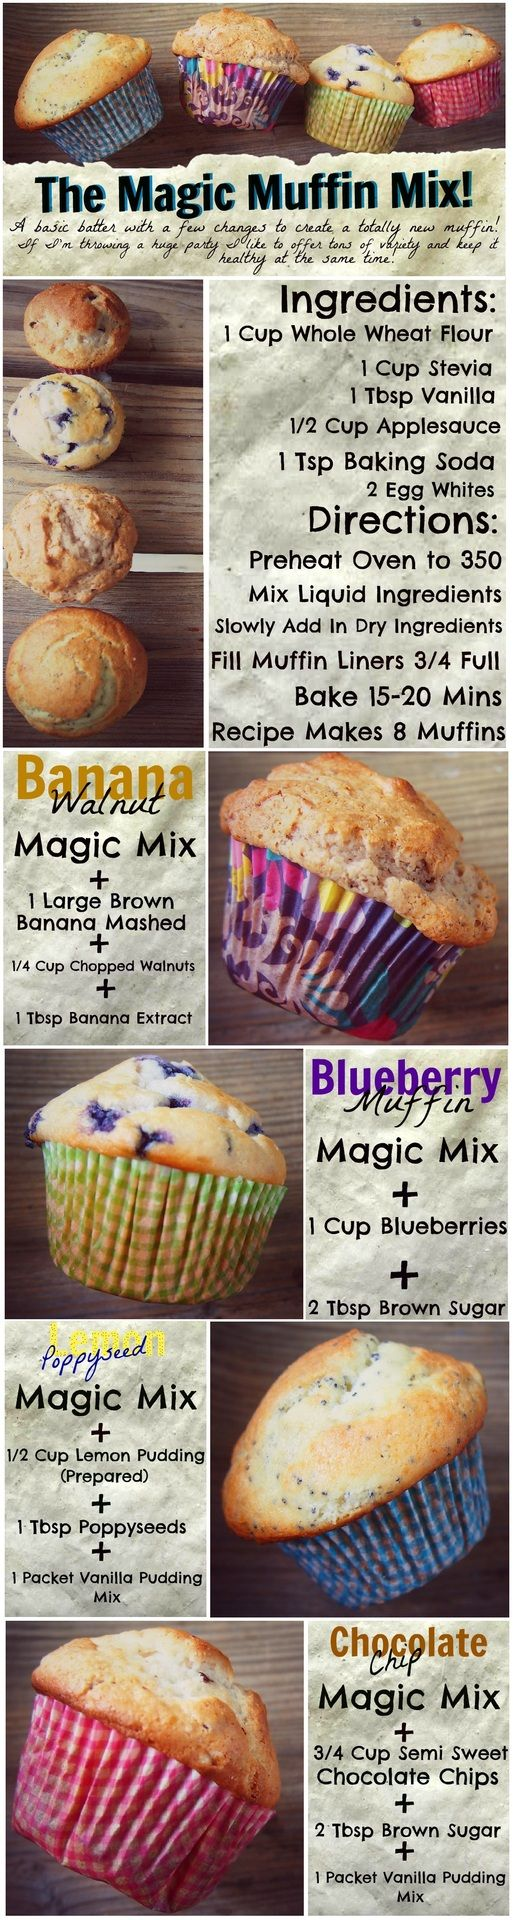 magic muffin mix!